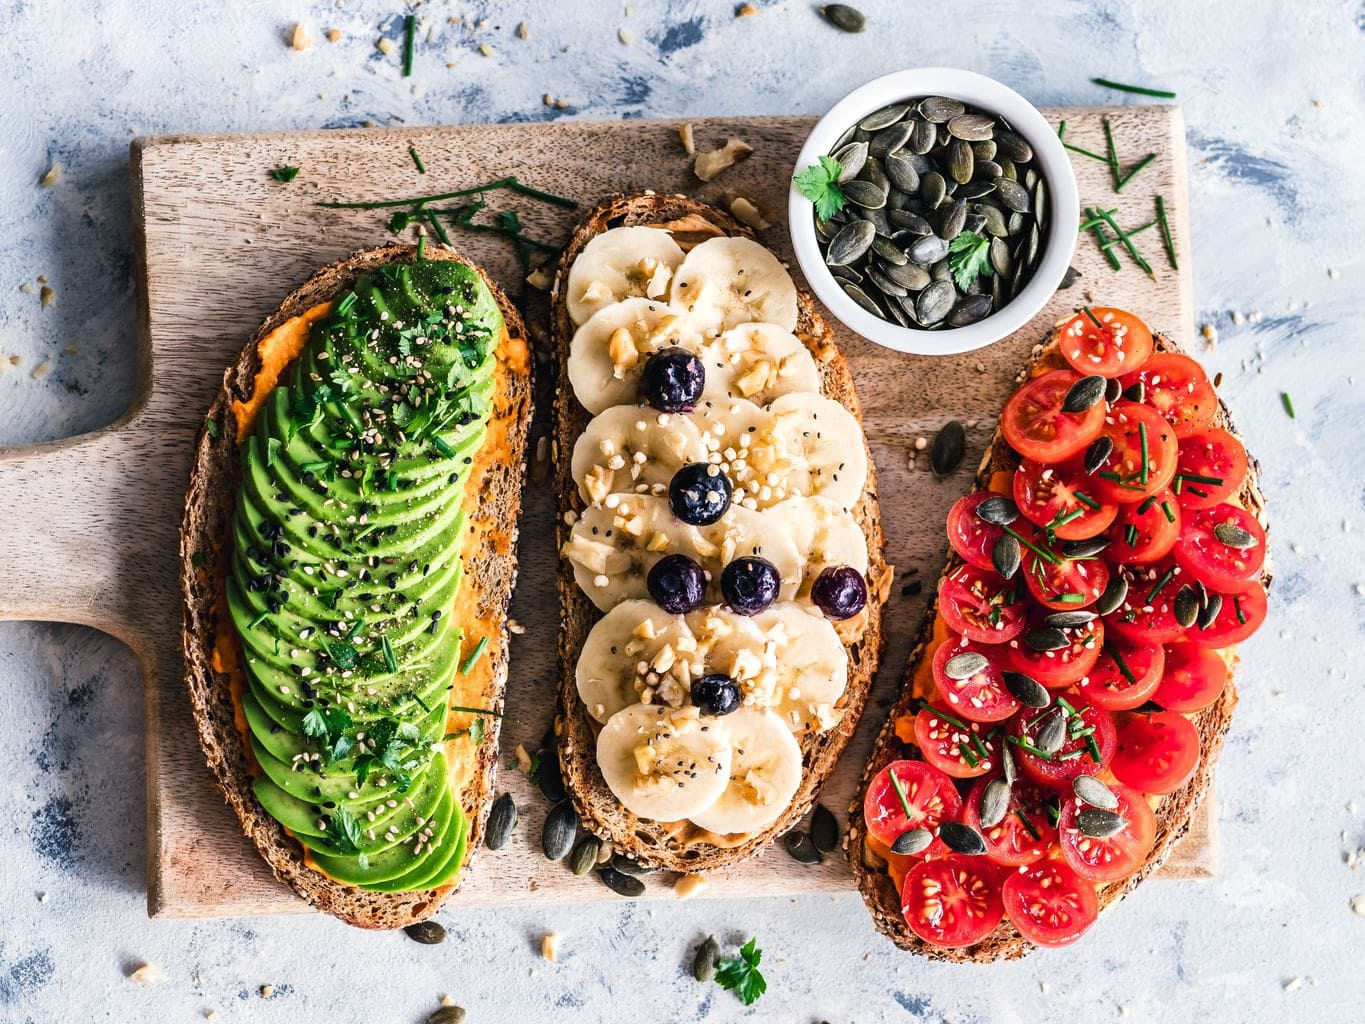 How Going Vegan Can Promote Better Health for You and Your Family